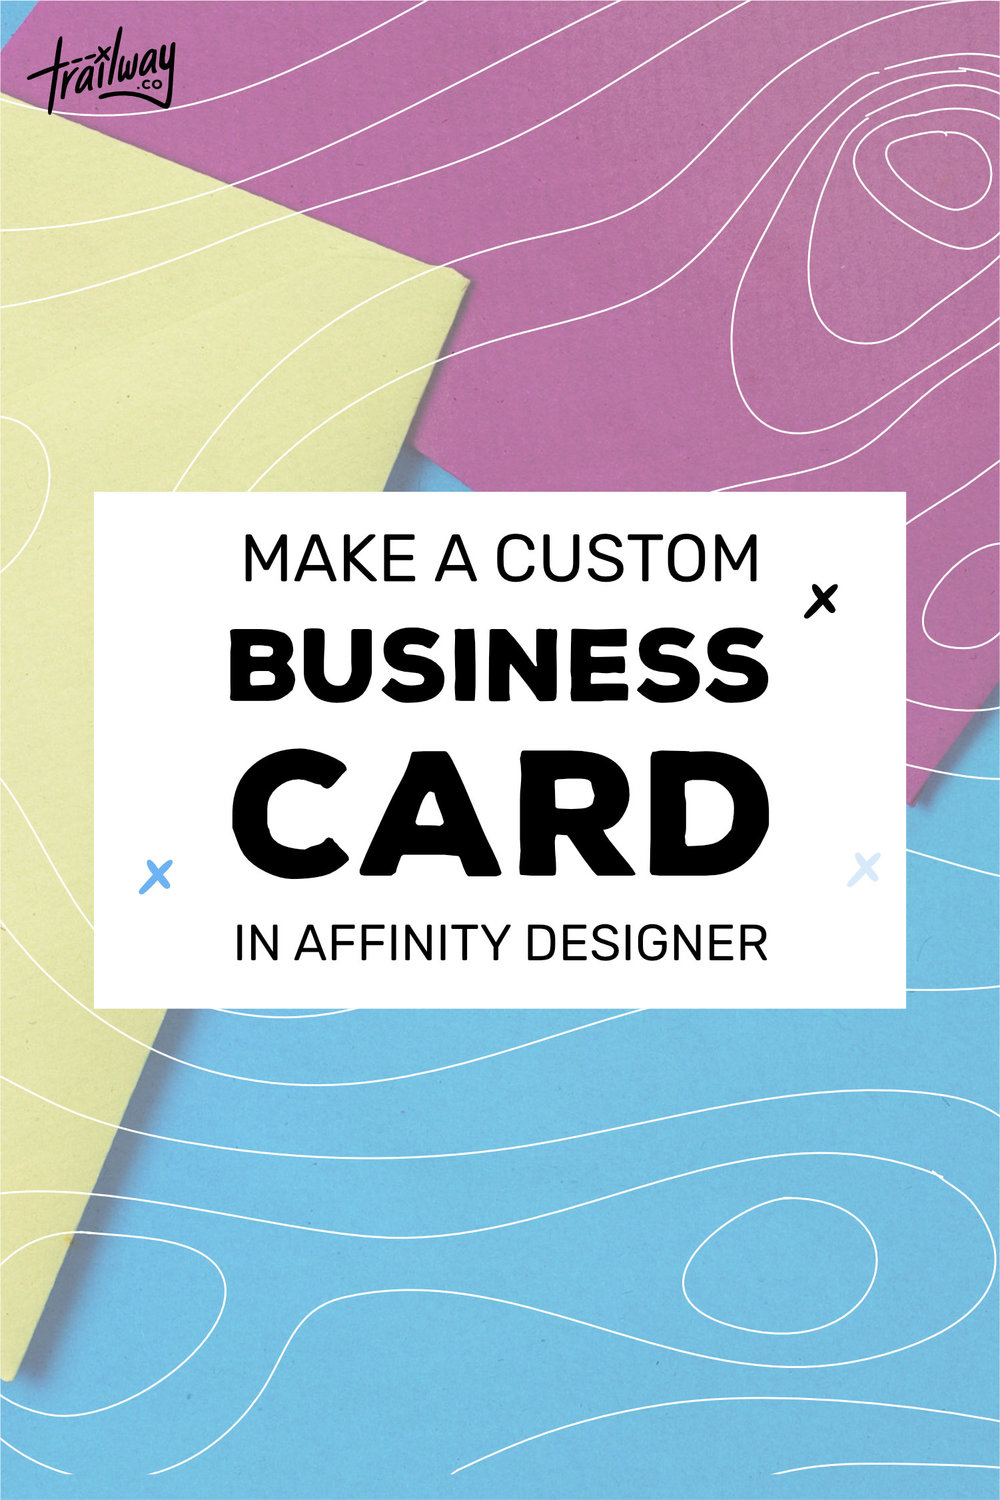 Making business cards in affinity designer heres a beginner tutorial on how to make simple business cards in affinity designer this will mainly delve into setting up the document colourmoves